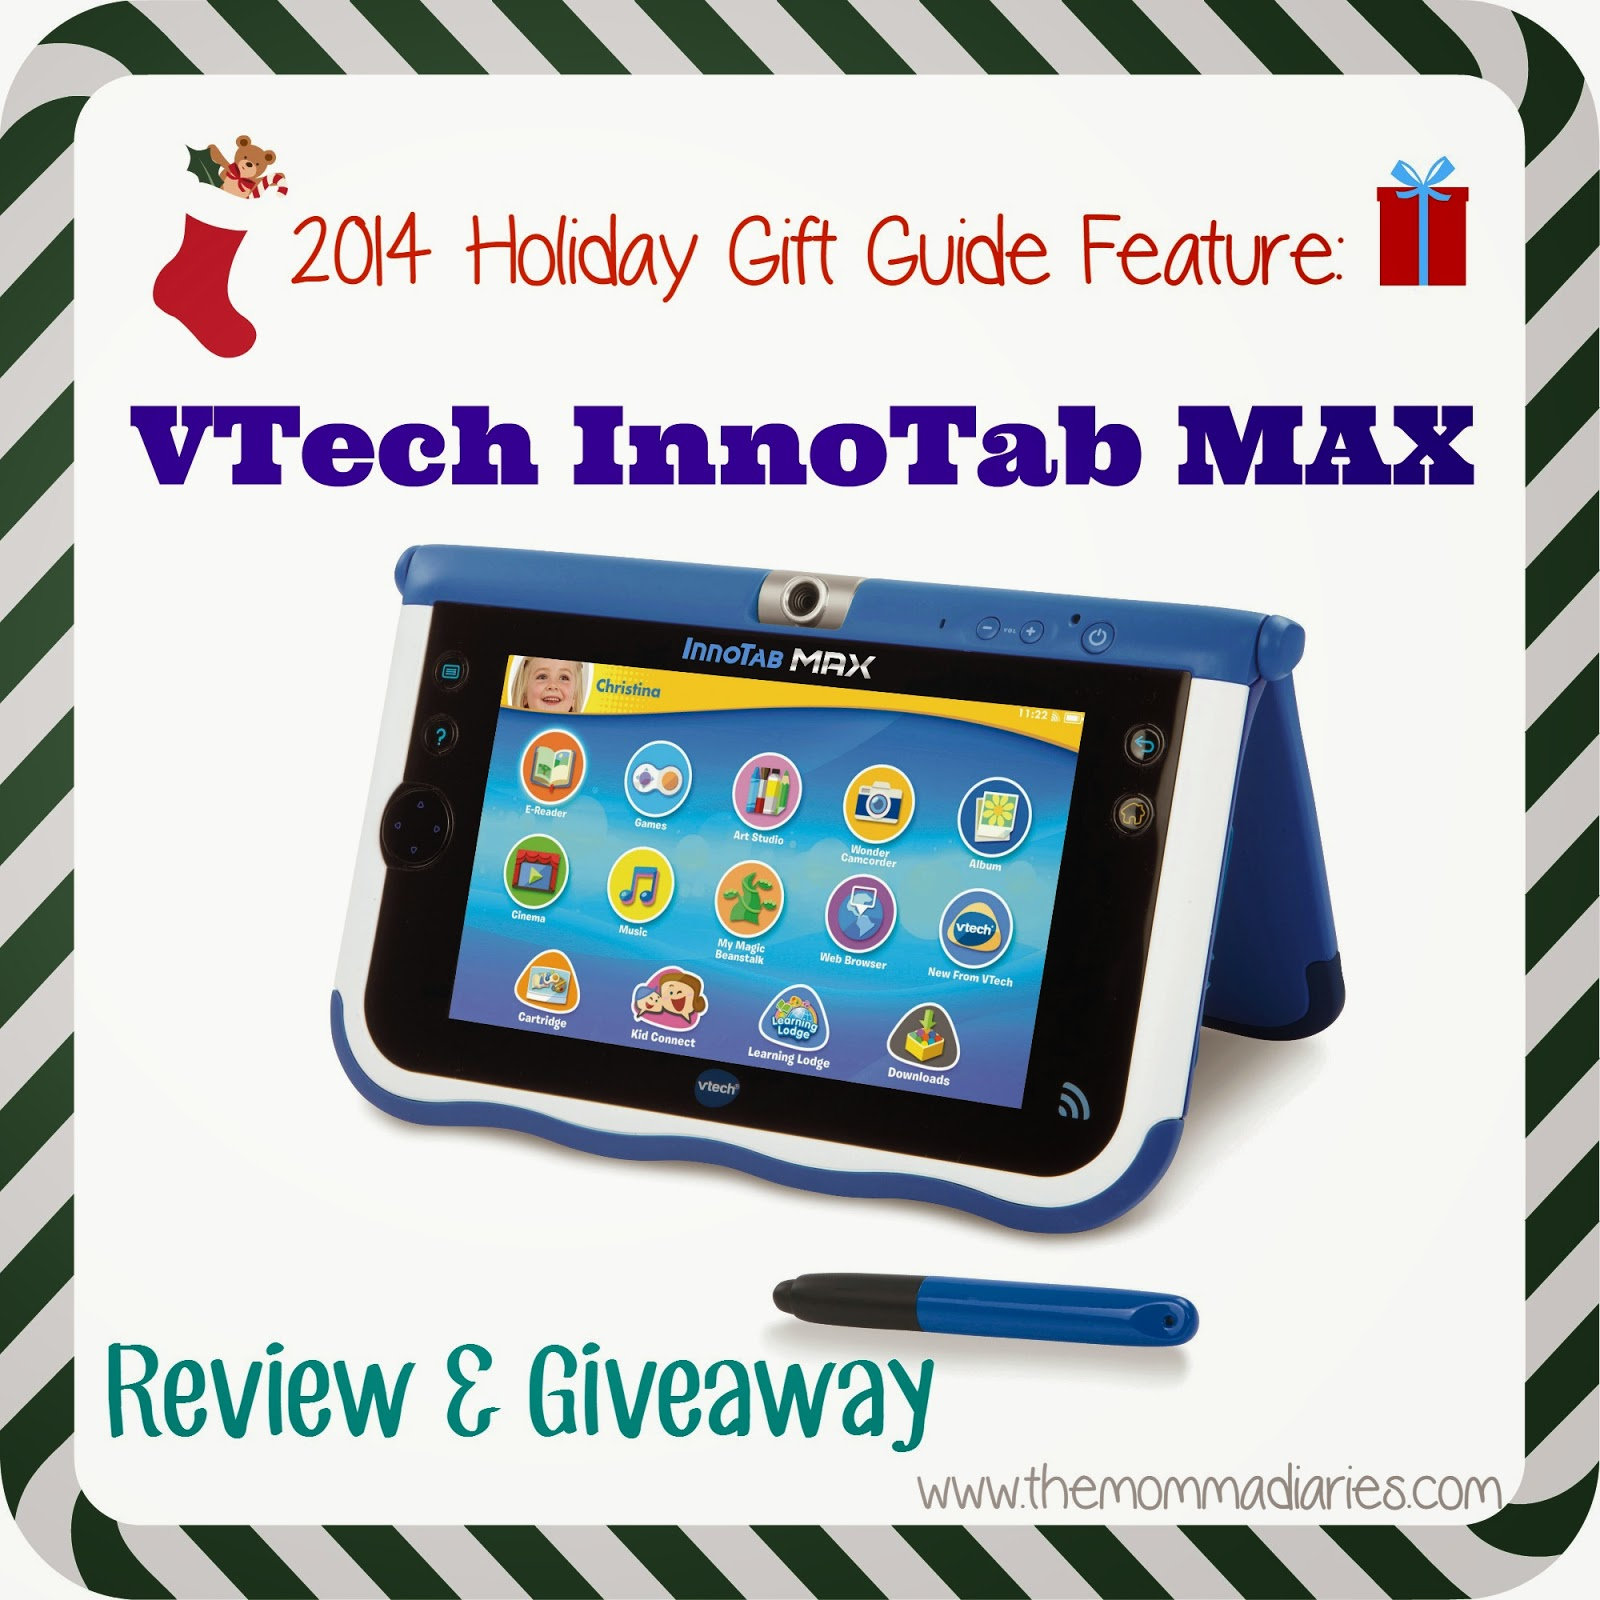 VTech InnoTab MAX Review and Giveaway #Holidaygiftguide